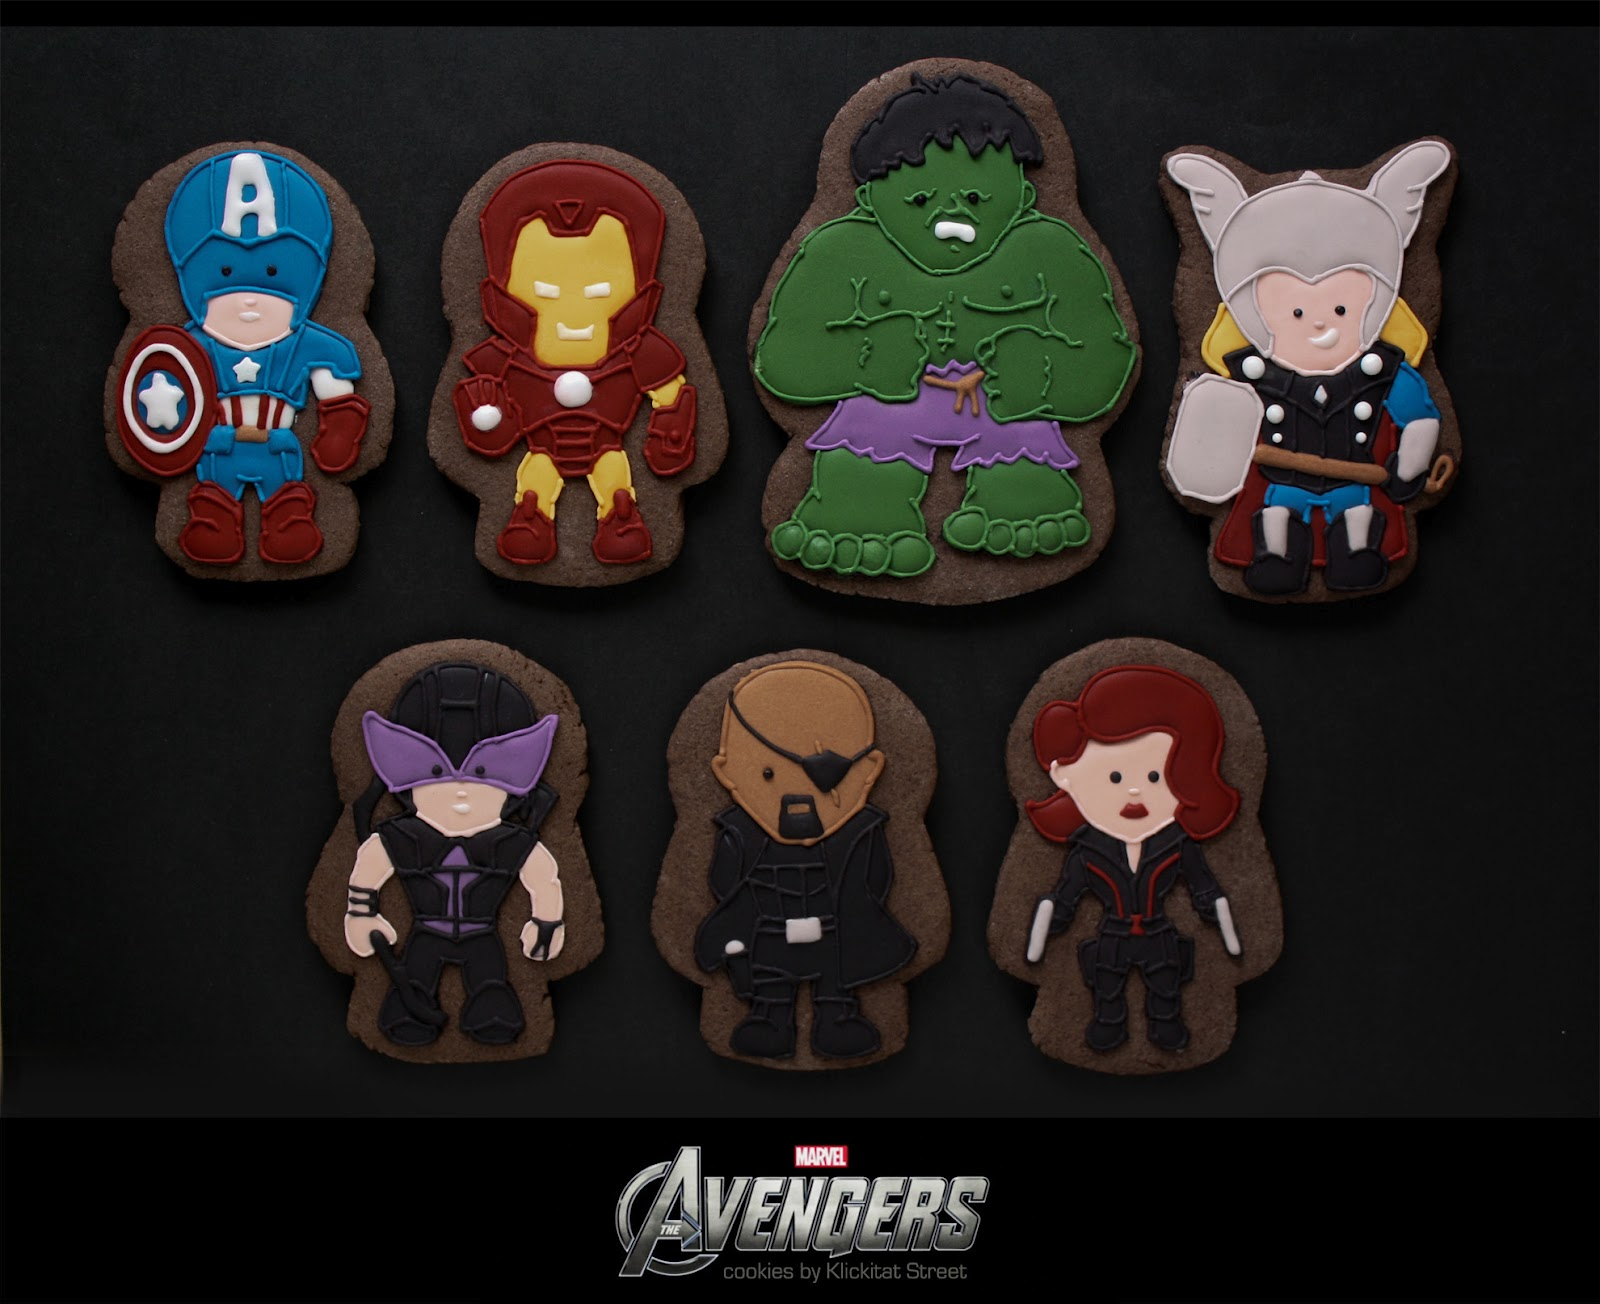 decorated sugar cookies of Marvel Avengers characters Iron Man, Captain America, Thor, Hulk, Hawkeye, Nick Fury, and Black Widow